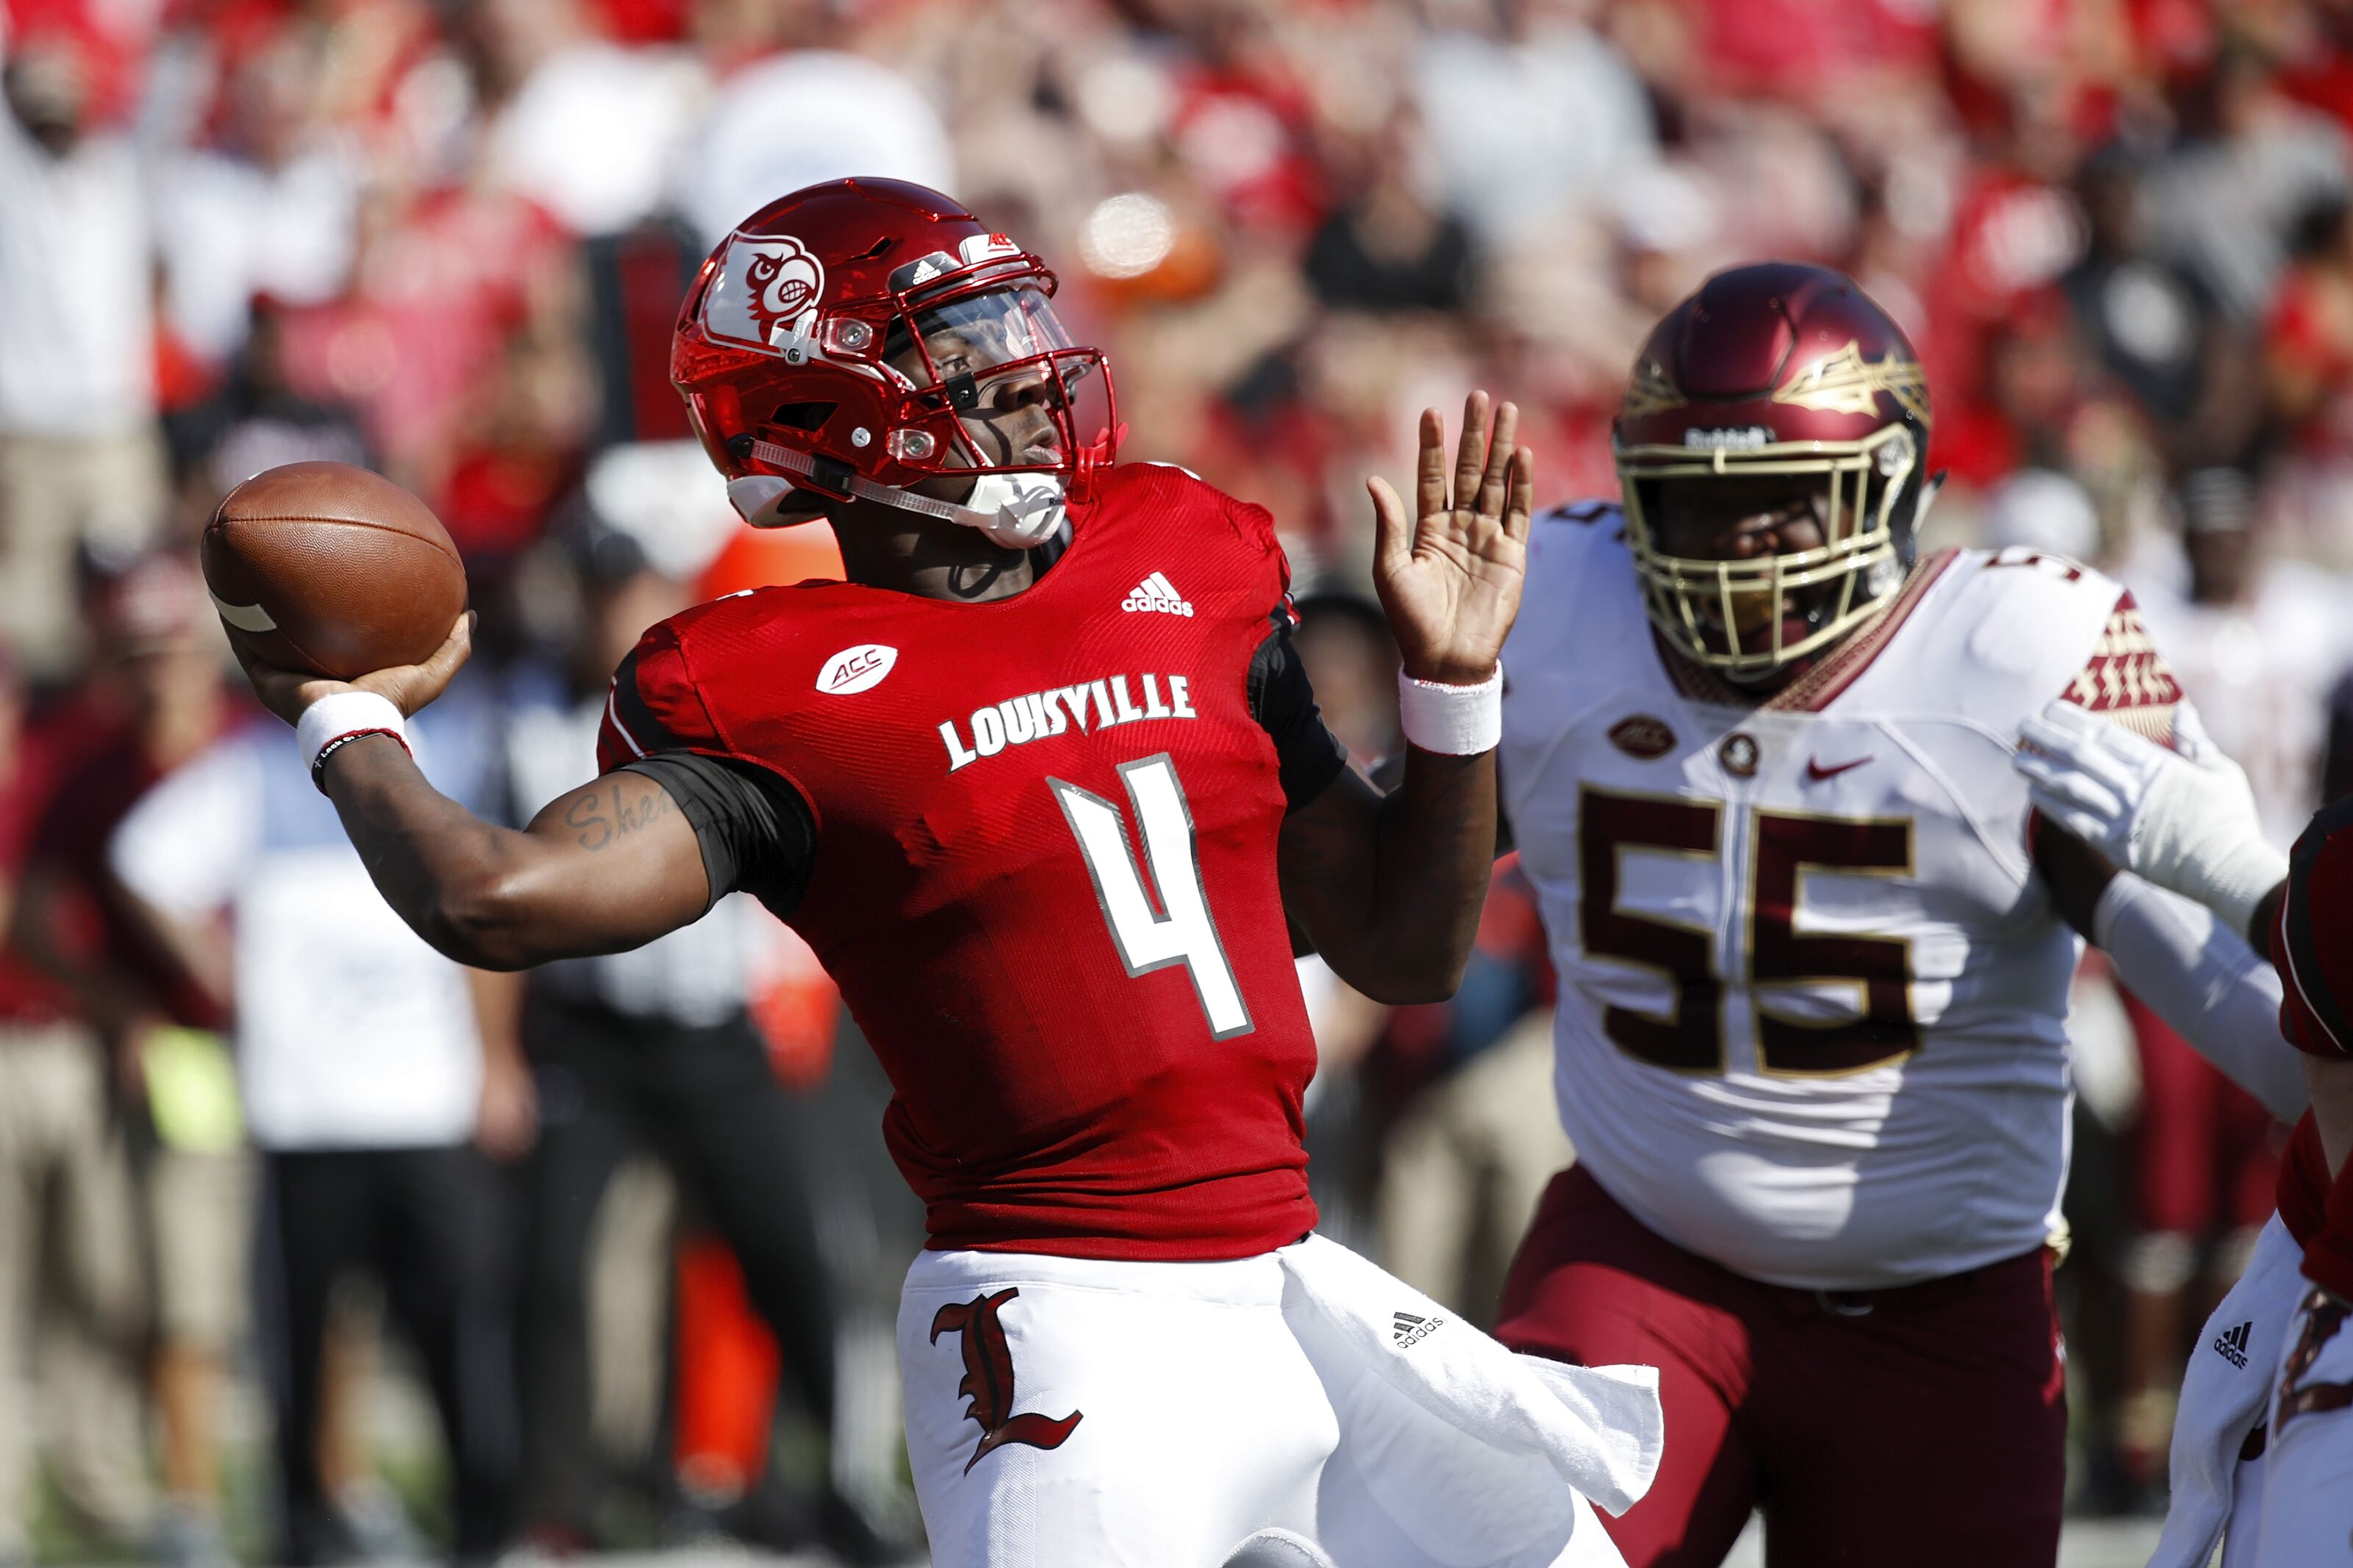 Louisville football: 5 keys to defeating Florida State